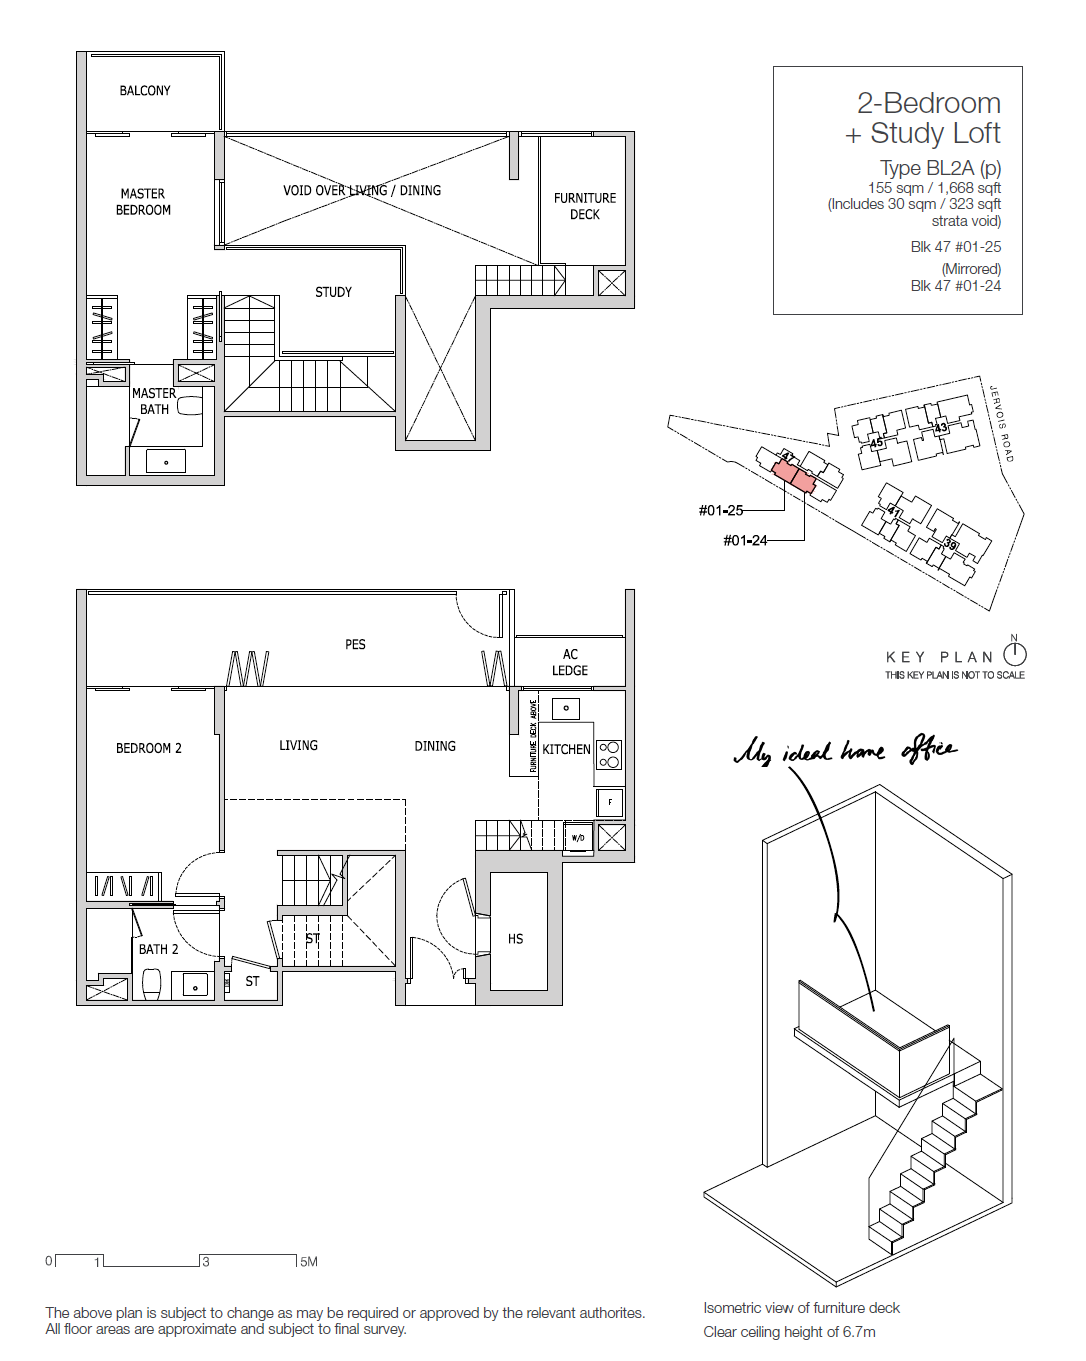 Type BL2A - 2 Bedroom + Study Loft